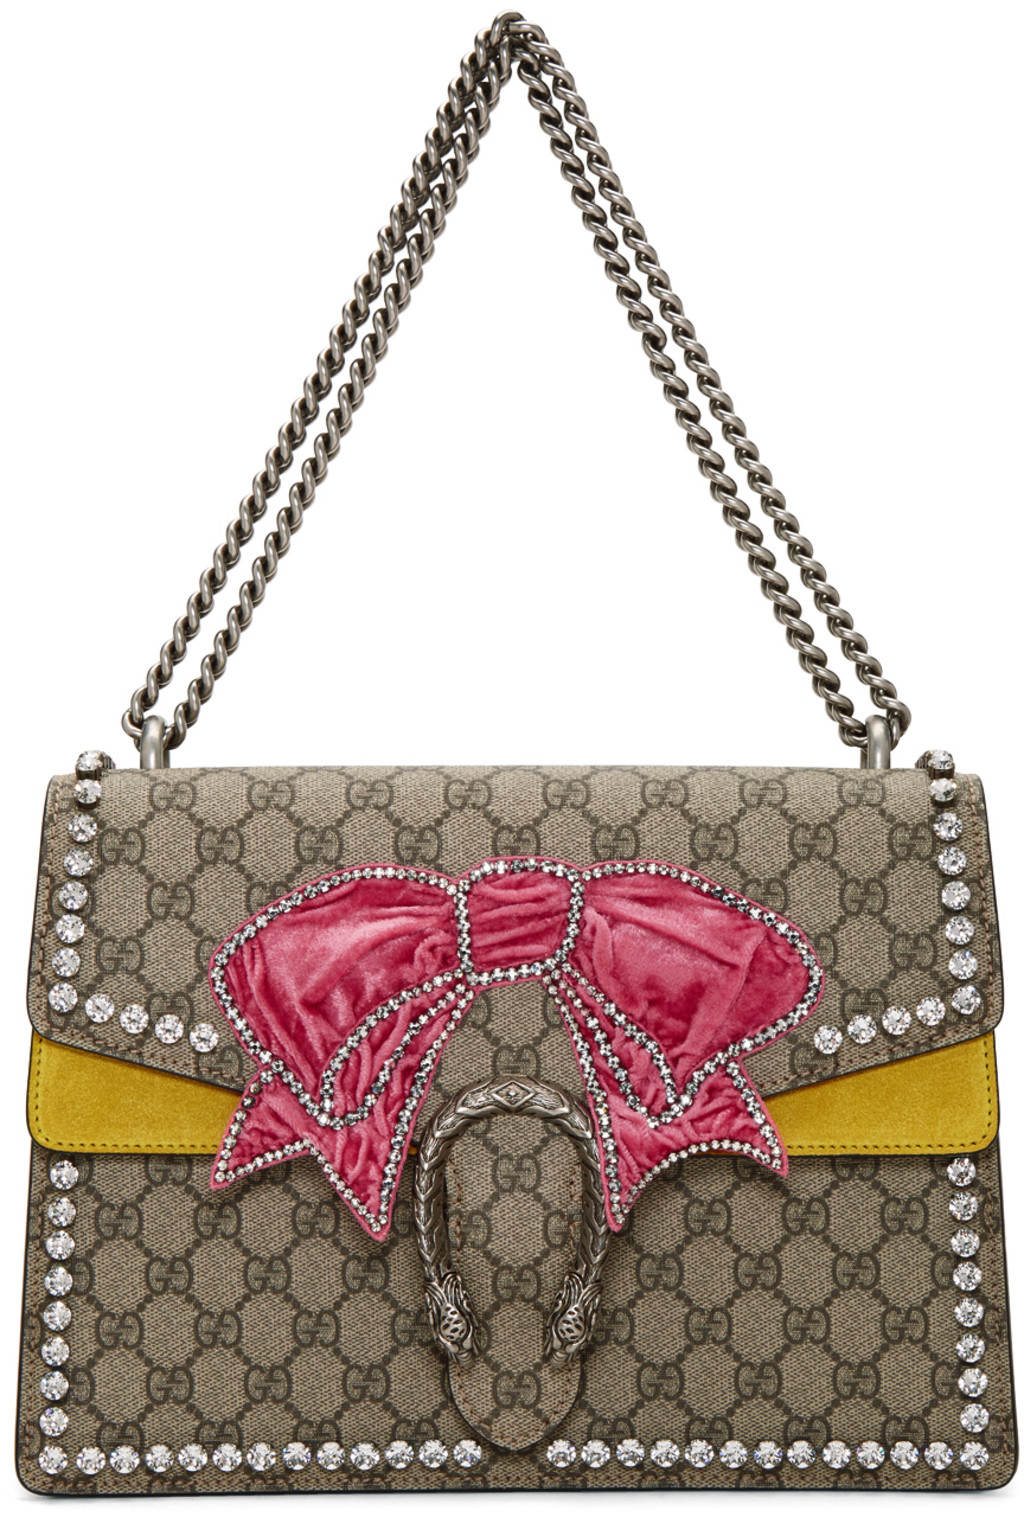 Gucci For Women SS Collection SSENSE - How to create invoice in word gucci outlet online store authentic